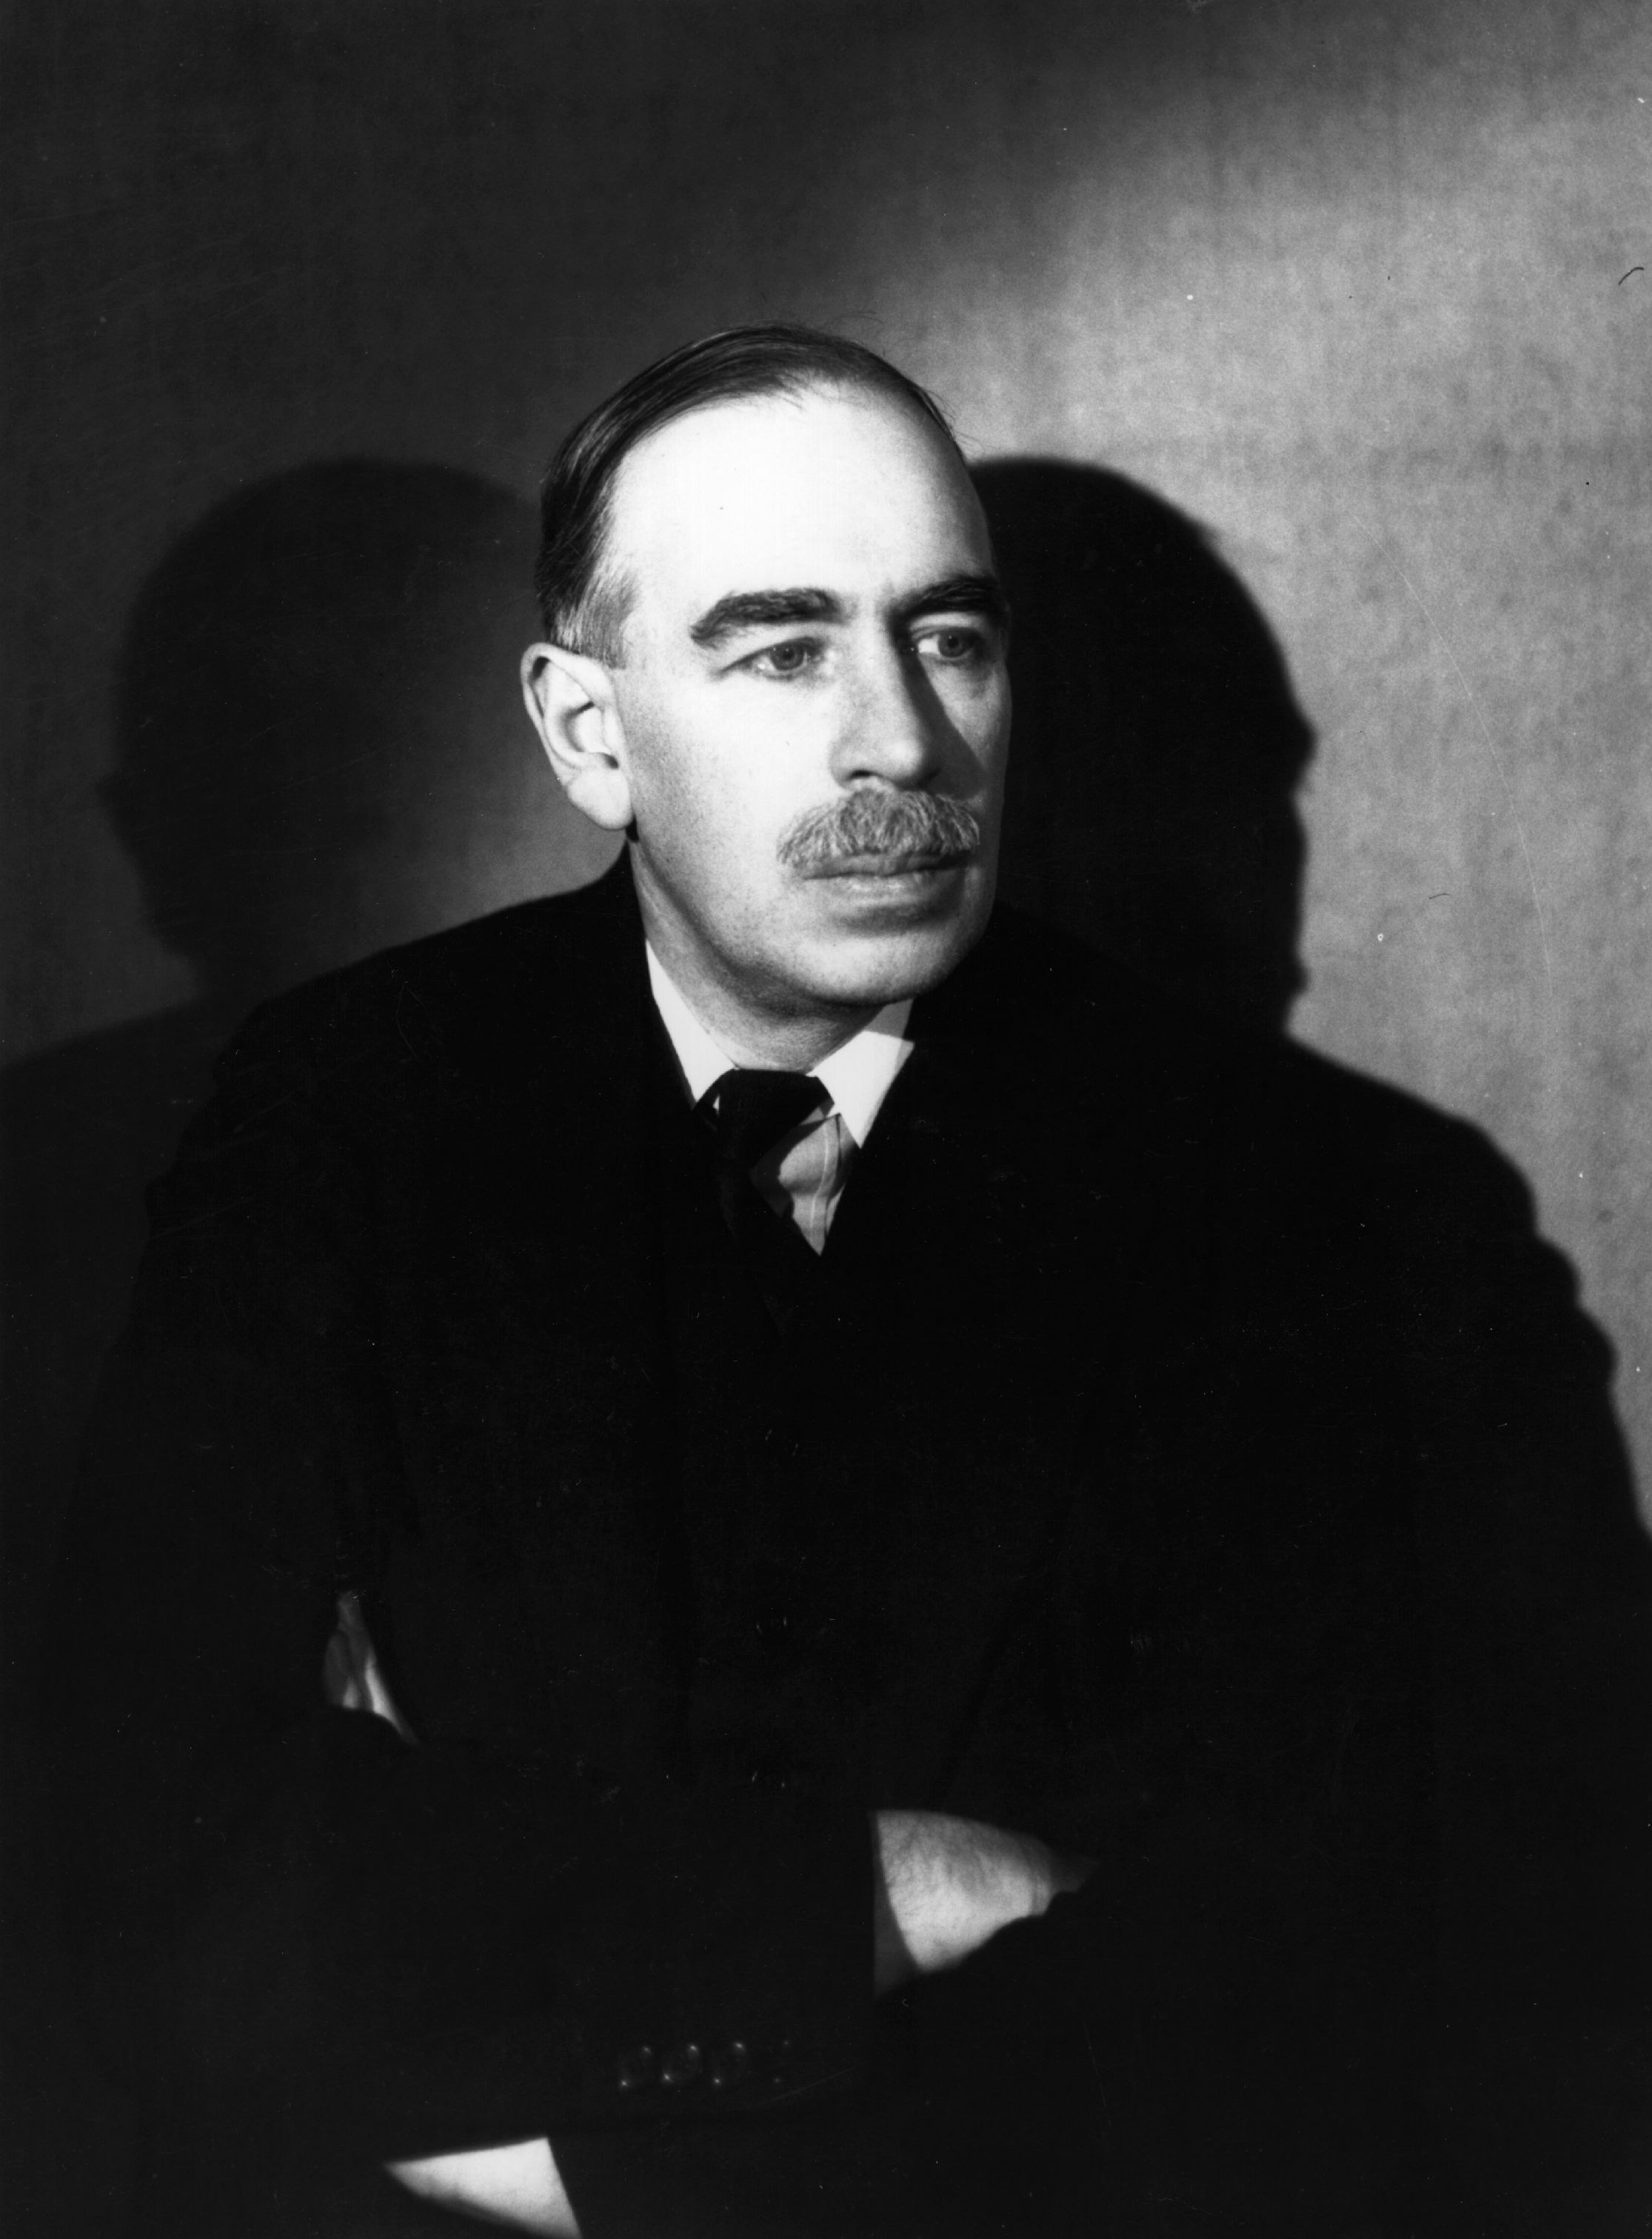 essays biography john maynard keynes 1951 reprint 354 pages no dust jacket this is an ex-library book black cloth with gilt lettering b&w frontispiece clean pages mild foxing and tanning to.